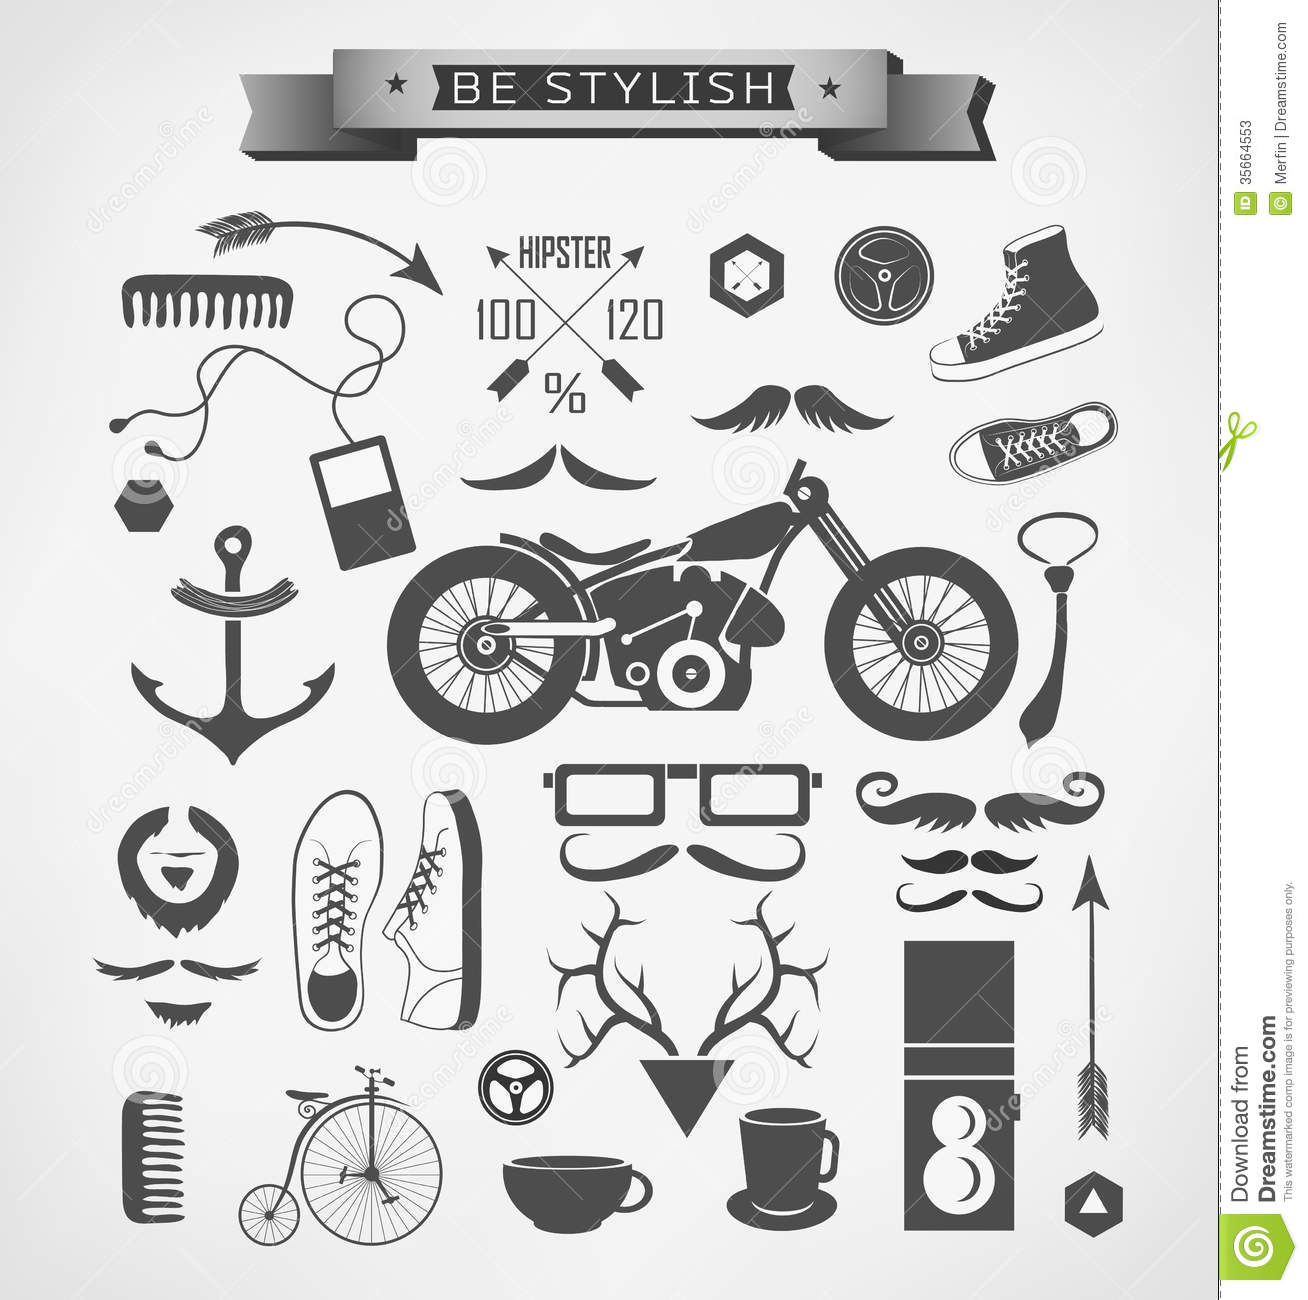 hipster style elements icon and object can be stock photos image 35664553. Black Bedroom Furniture Sets. Home Design Ideas